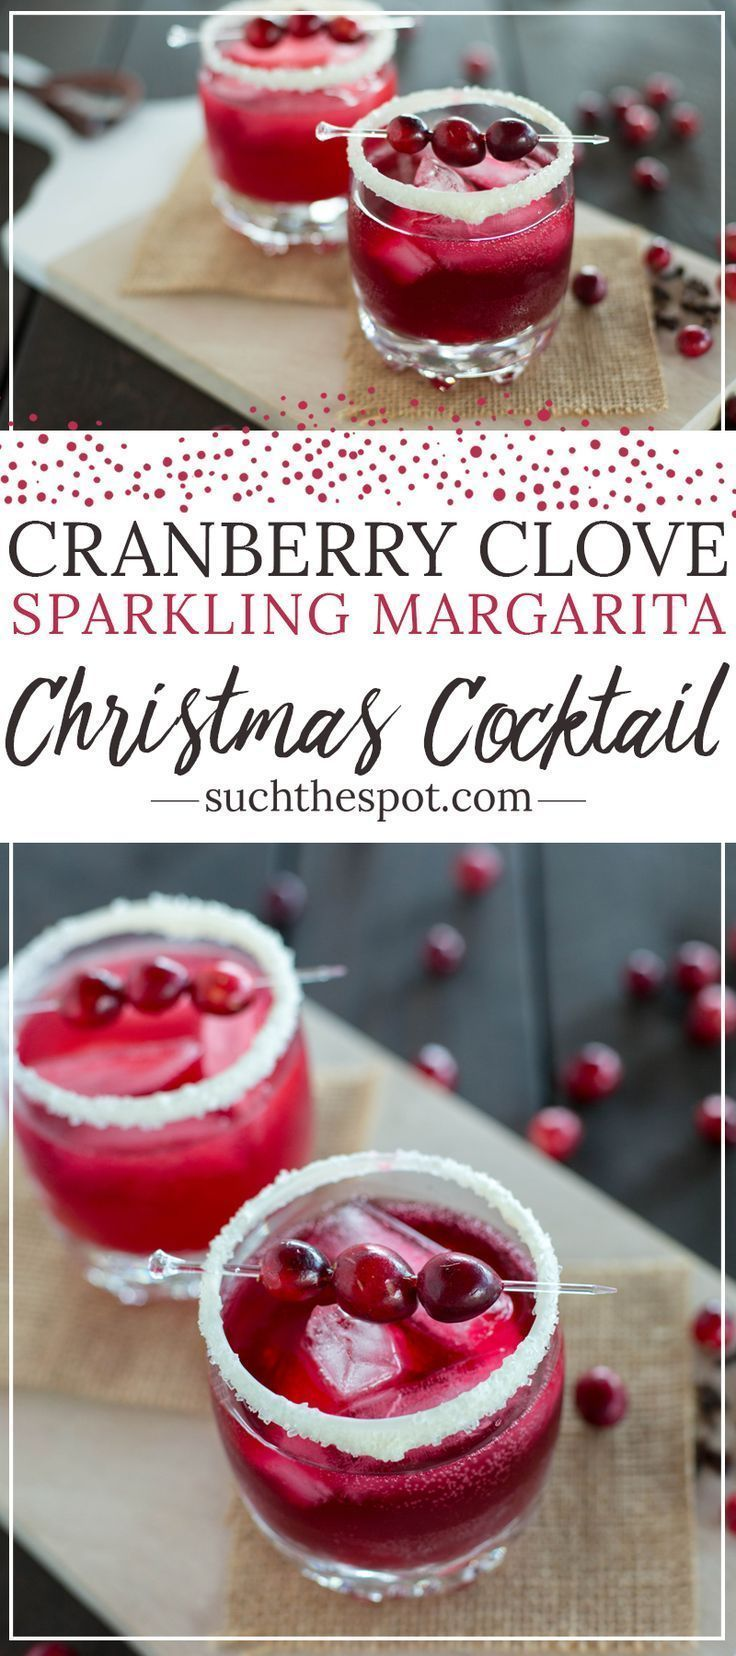 When it comes to drinks that are both impressive and festive, this merry margarita is a winner. Serve this at your Christmas party and Santa will definitely put you on his nice list. #Christmas #Cocktail #Margarita